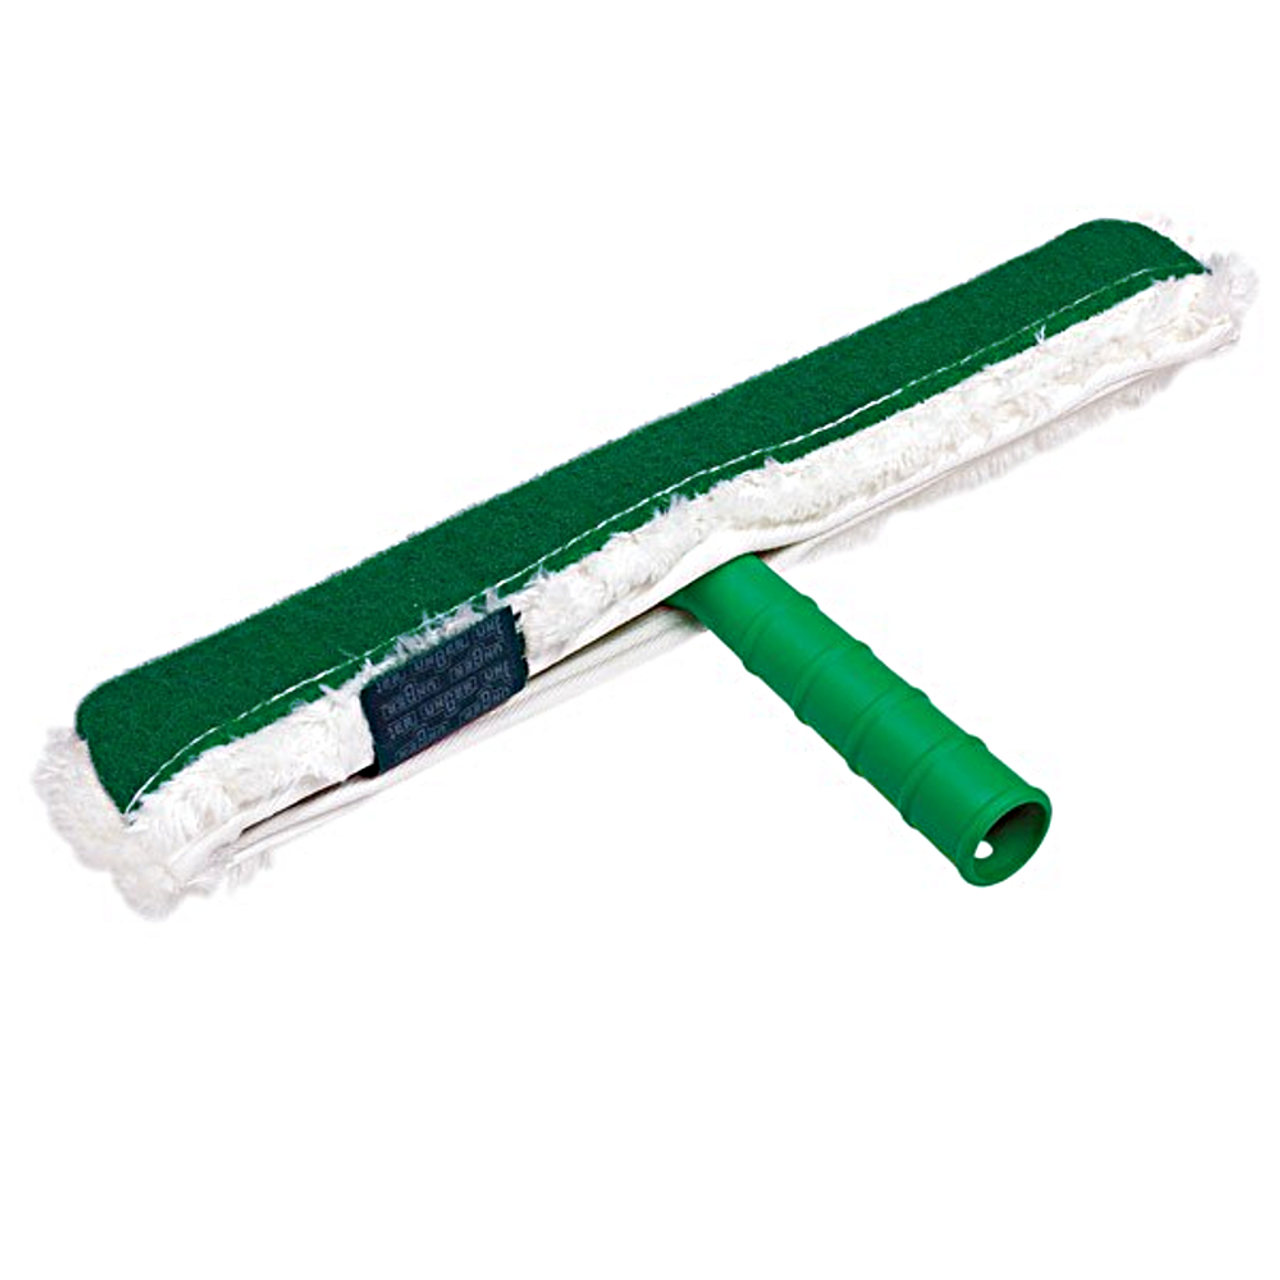 The Unger Pad Strip Washer Complete is a dual window cleaner with blended fabric on one side and scrub pad on the other.